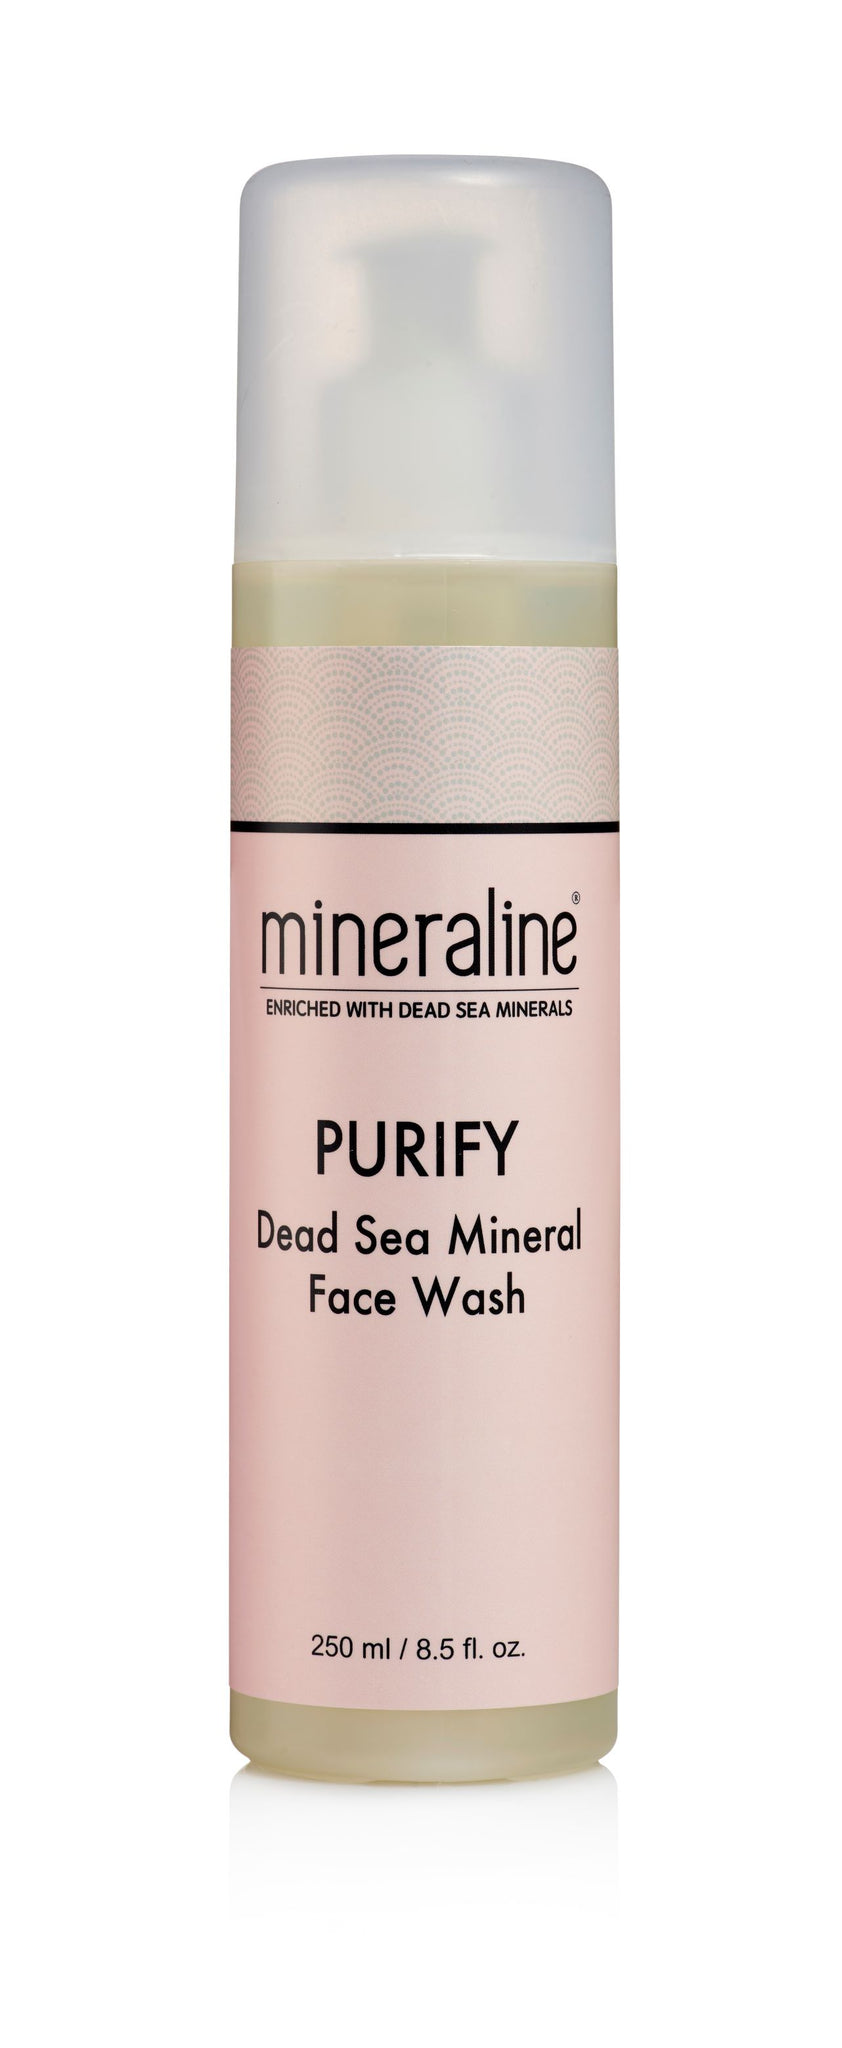 mineraline Dead Sea Mineral Face Wash